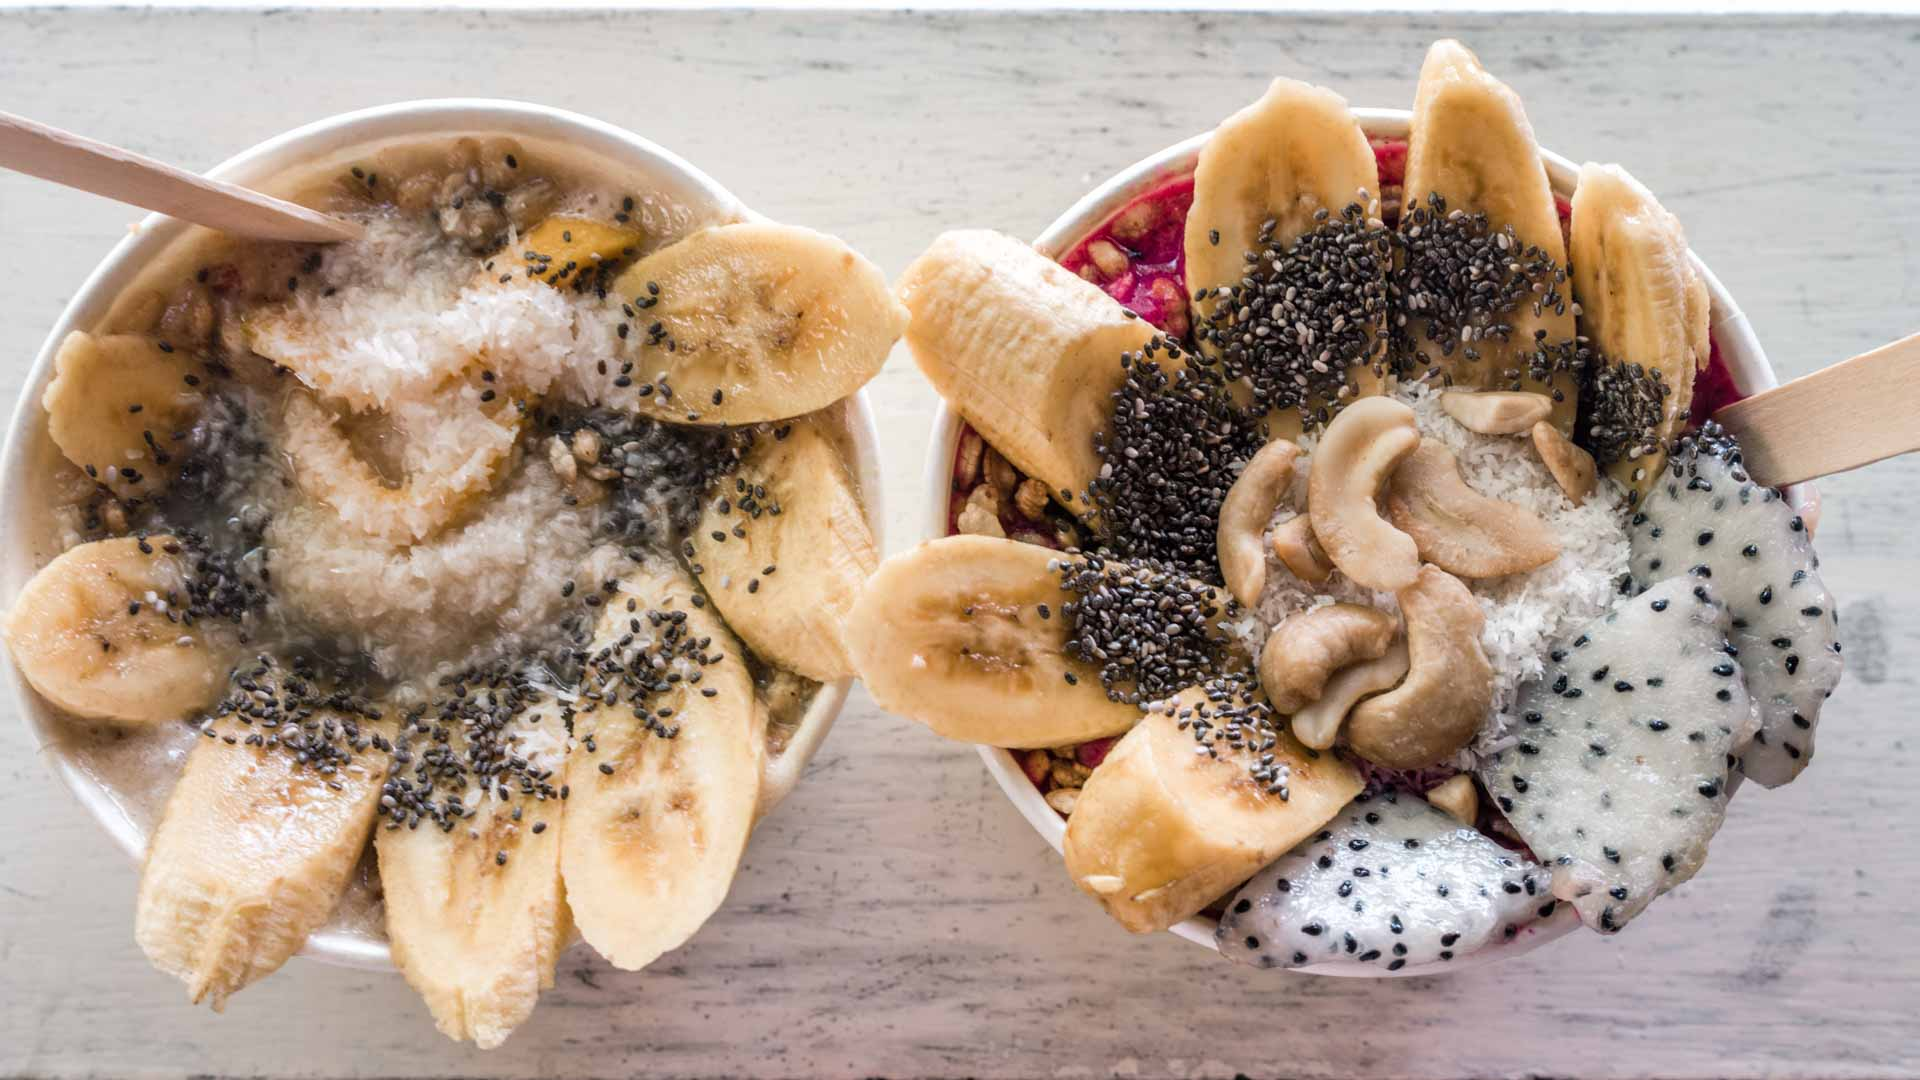 Smoothie bowls from Glow